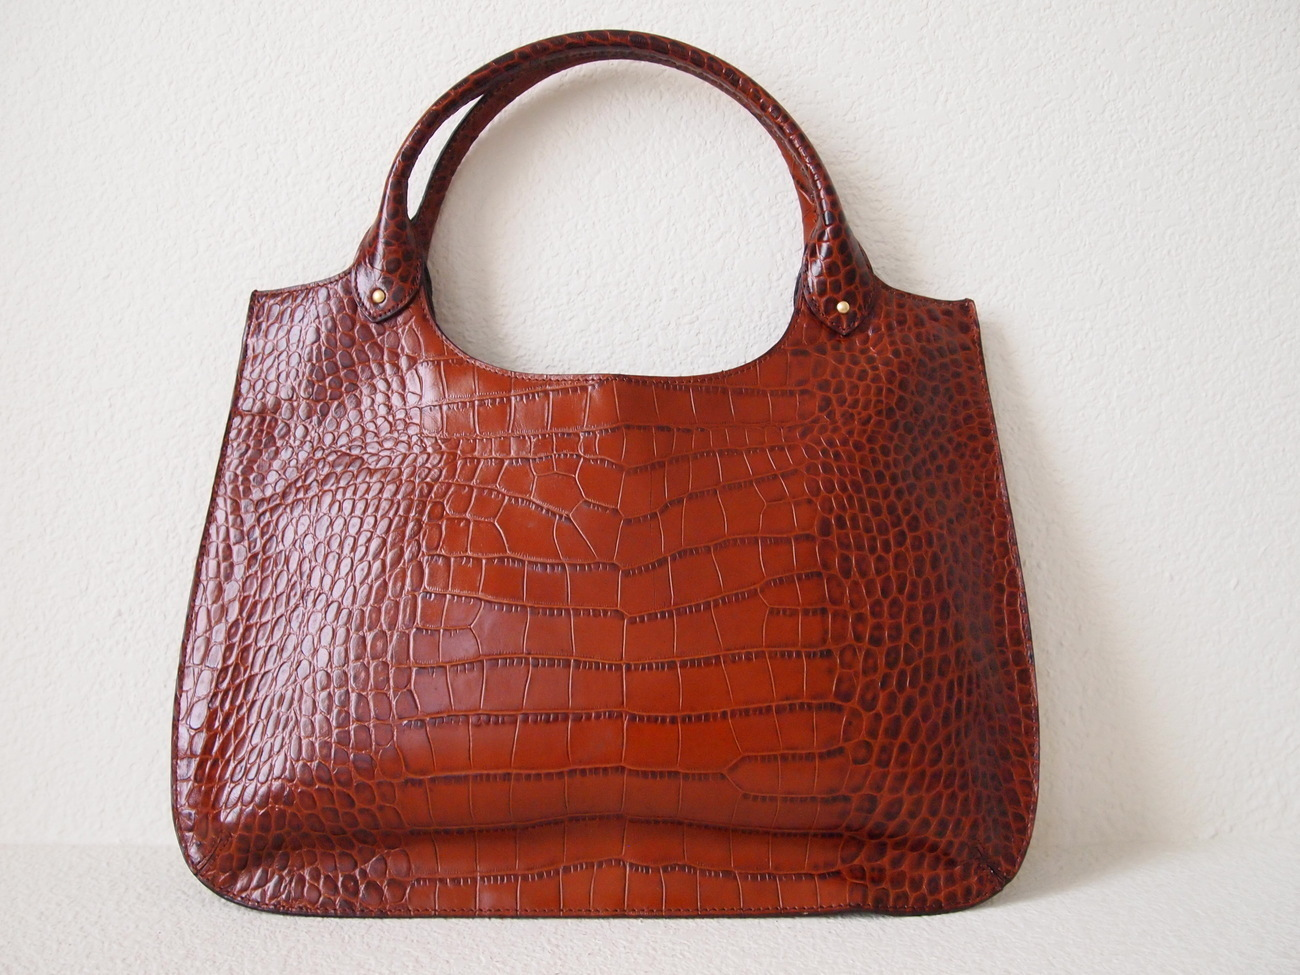 Brown Croc Embossed Patent Leather Tote / Shoulder Bag